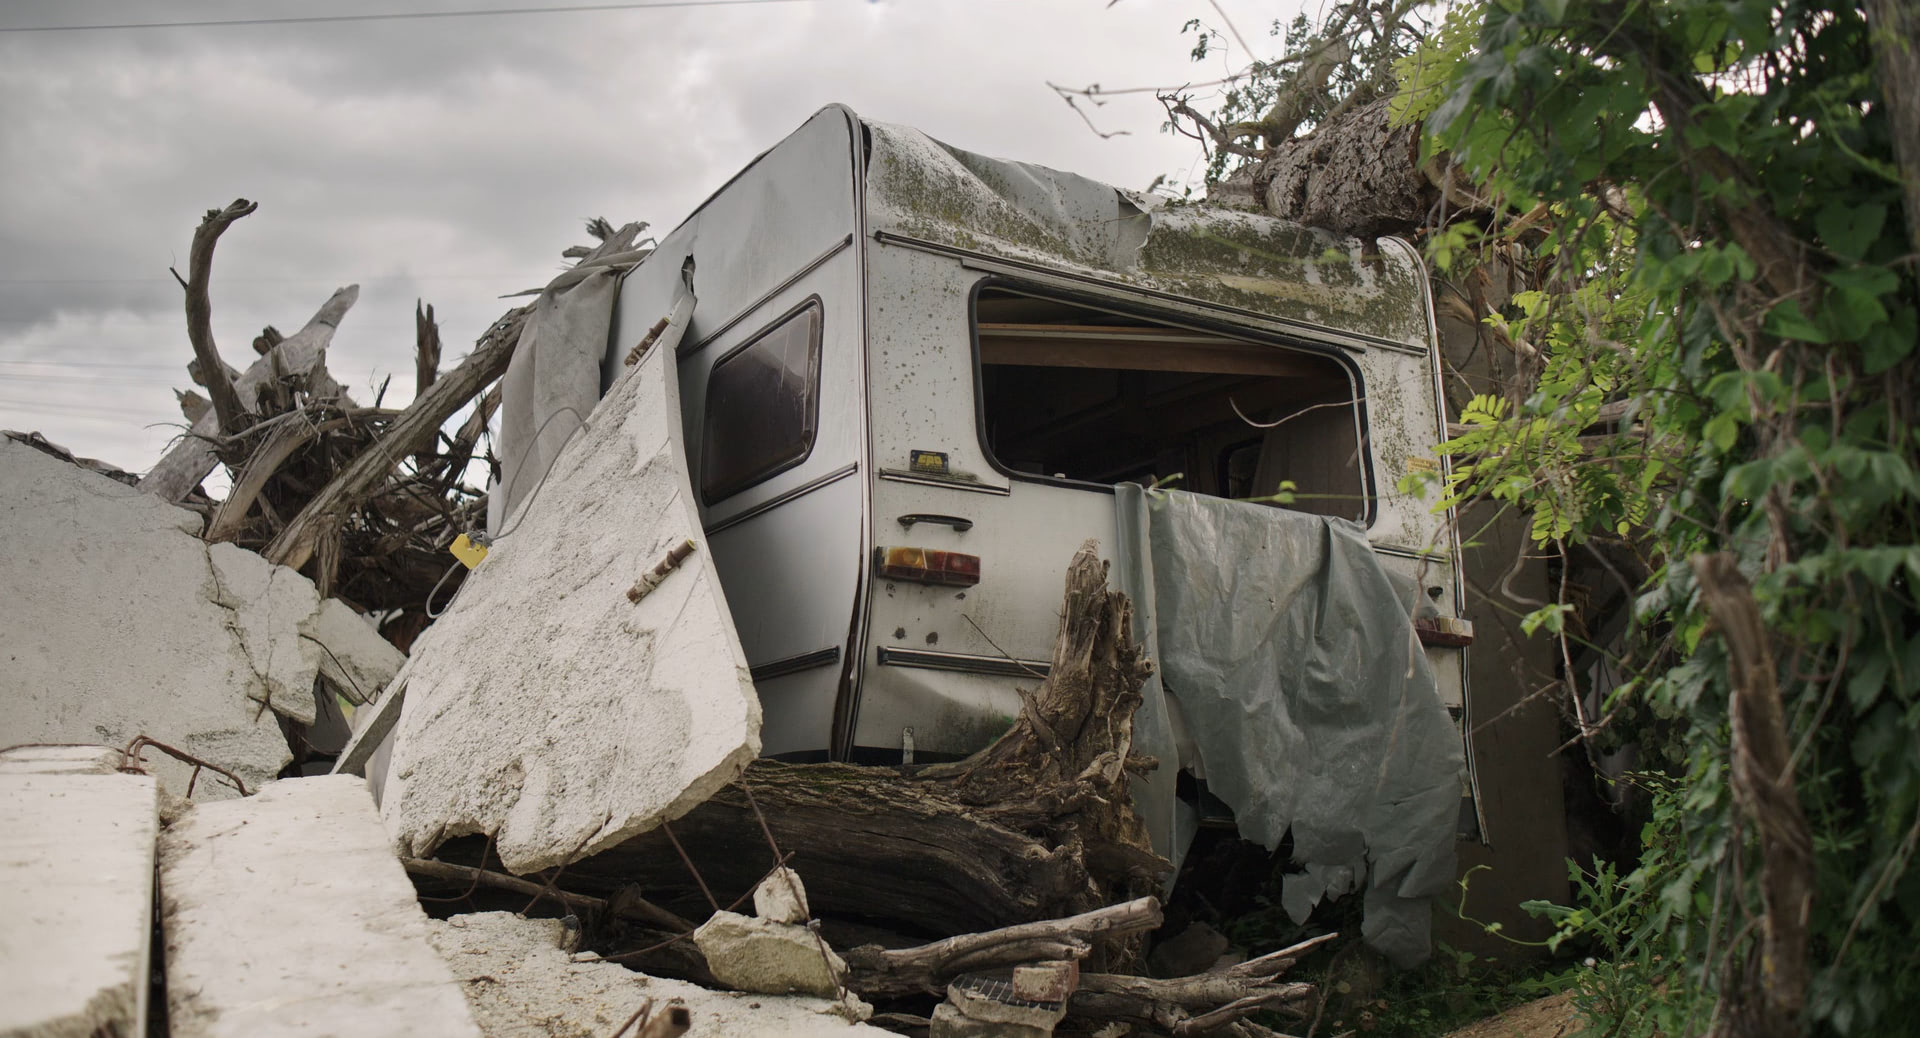 An old and destroyed caravan covered by wood and rubble